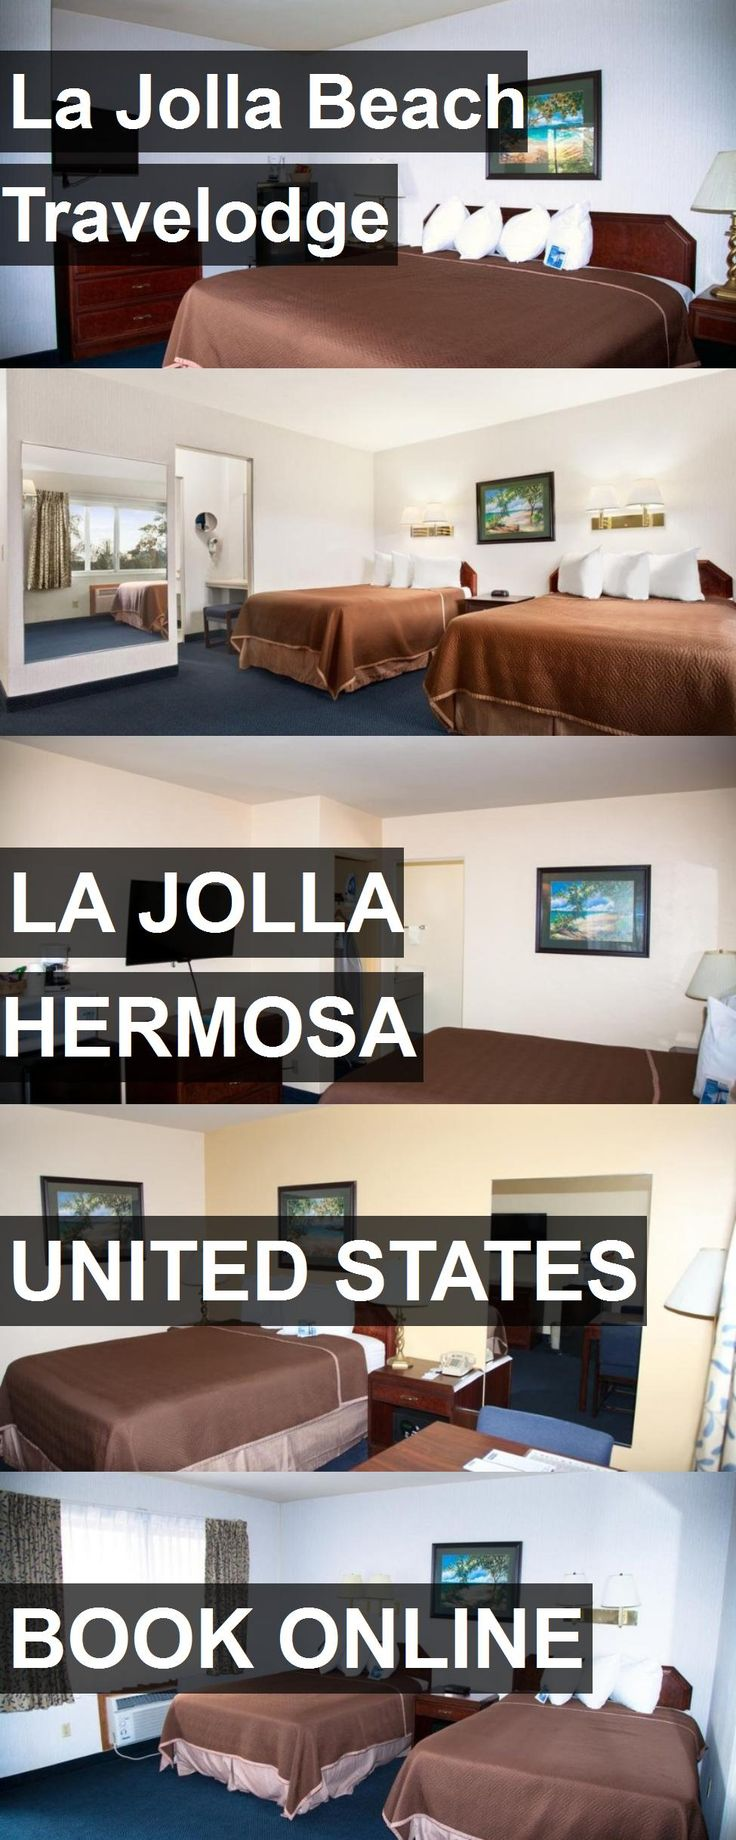 Hotel La Jolla Beach Travelodge in La Jolla Hermosa, United States. For more information, photos, reviews and best prices please follow the link. #UnitedStates #LaJollaHermosa #travel #vacation #hotel